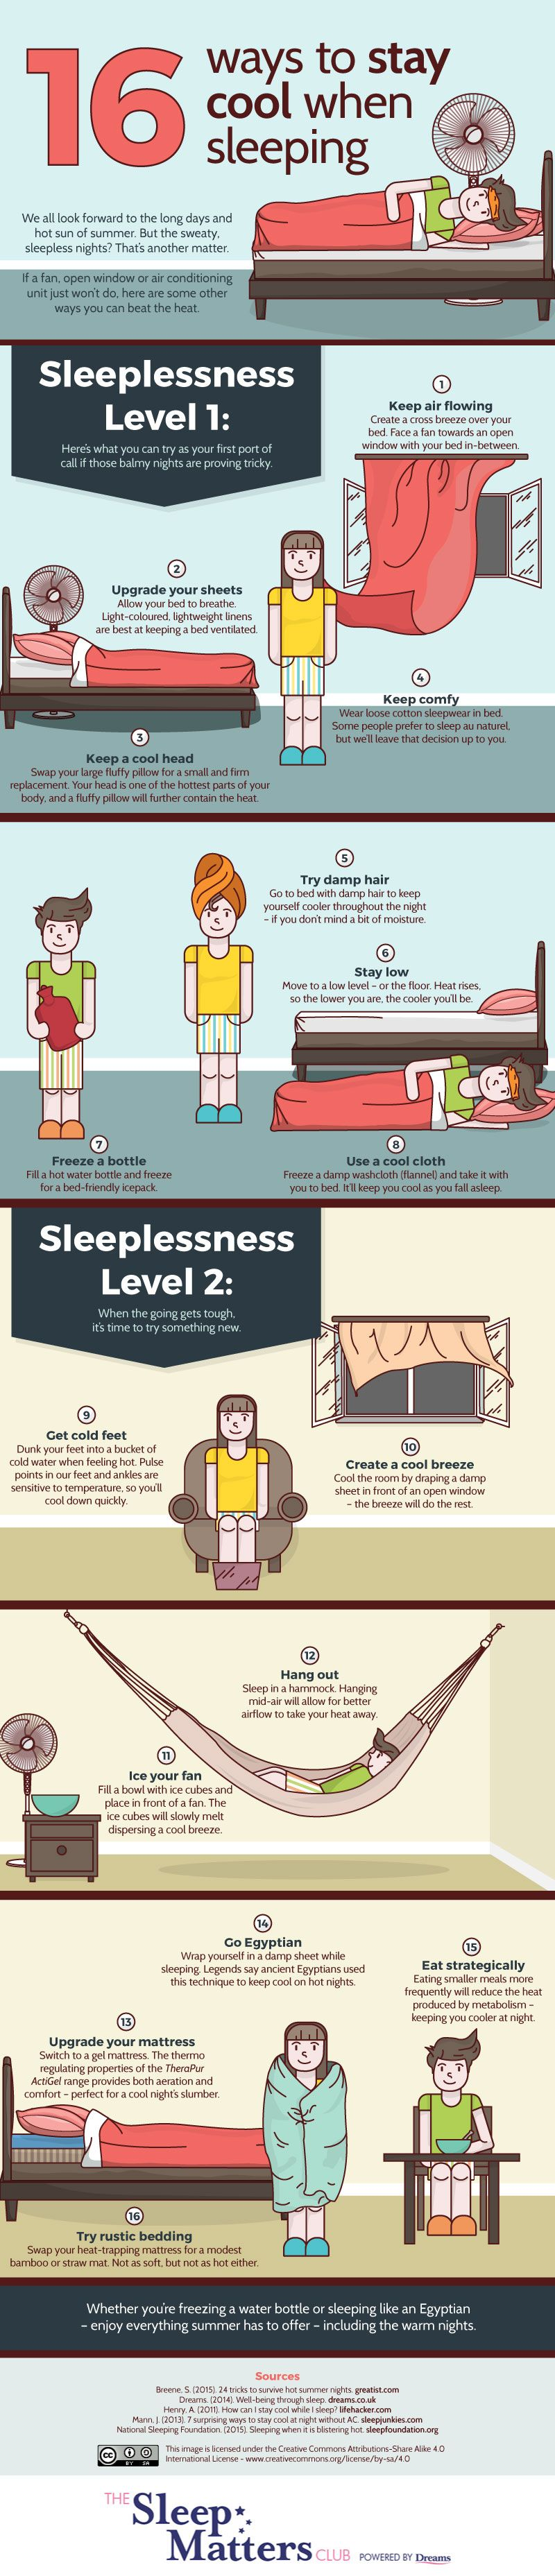 16 Ways To Stay Cool When Sleeping